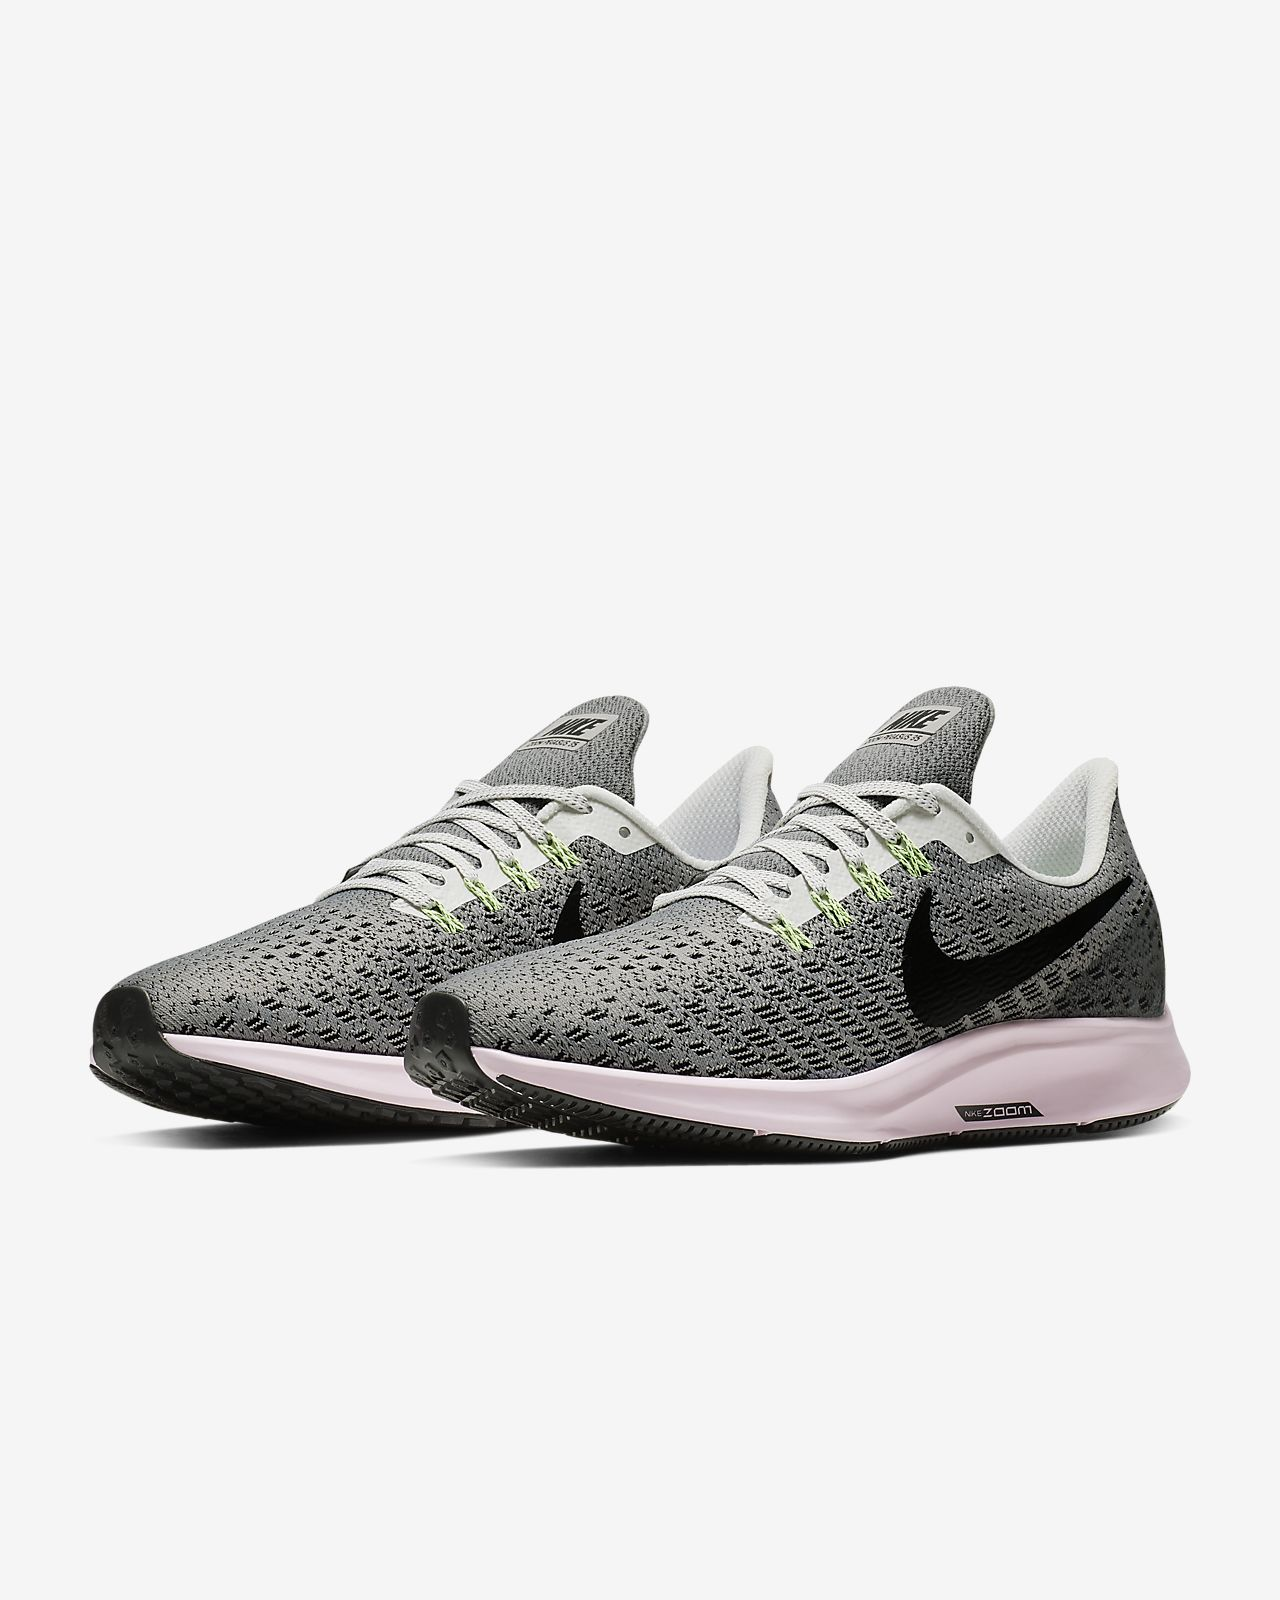 new product 9f085 962e5 ... Chaussure de running Nike Air Zoom Pegasus 35 pour Femme